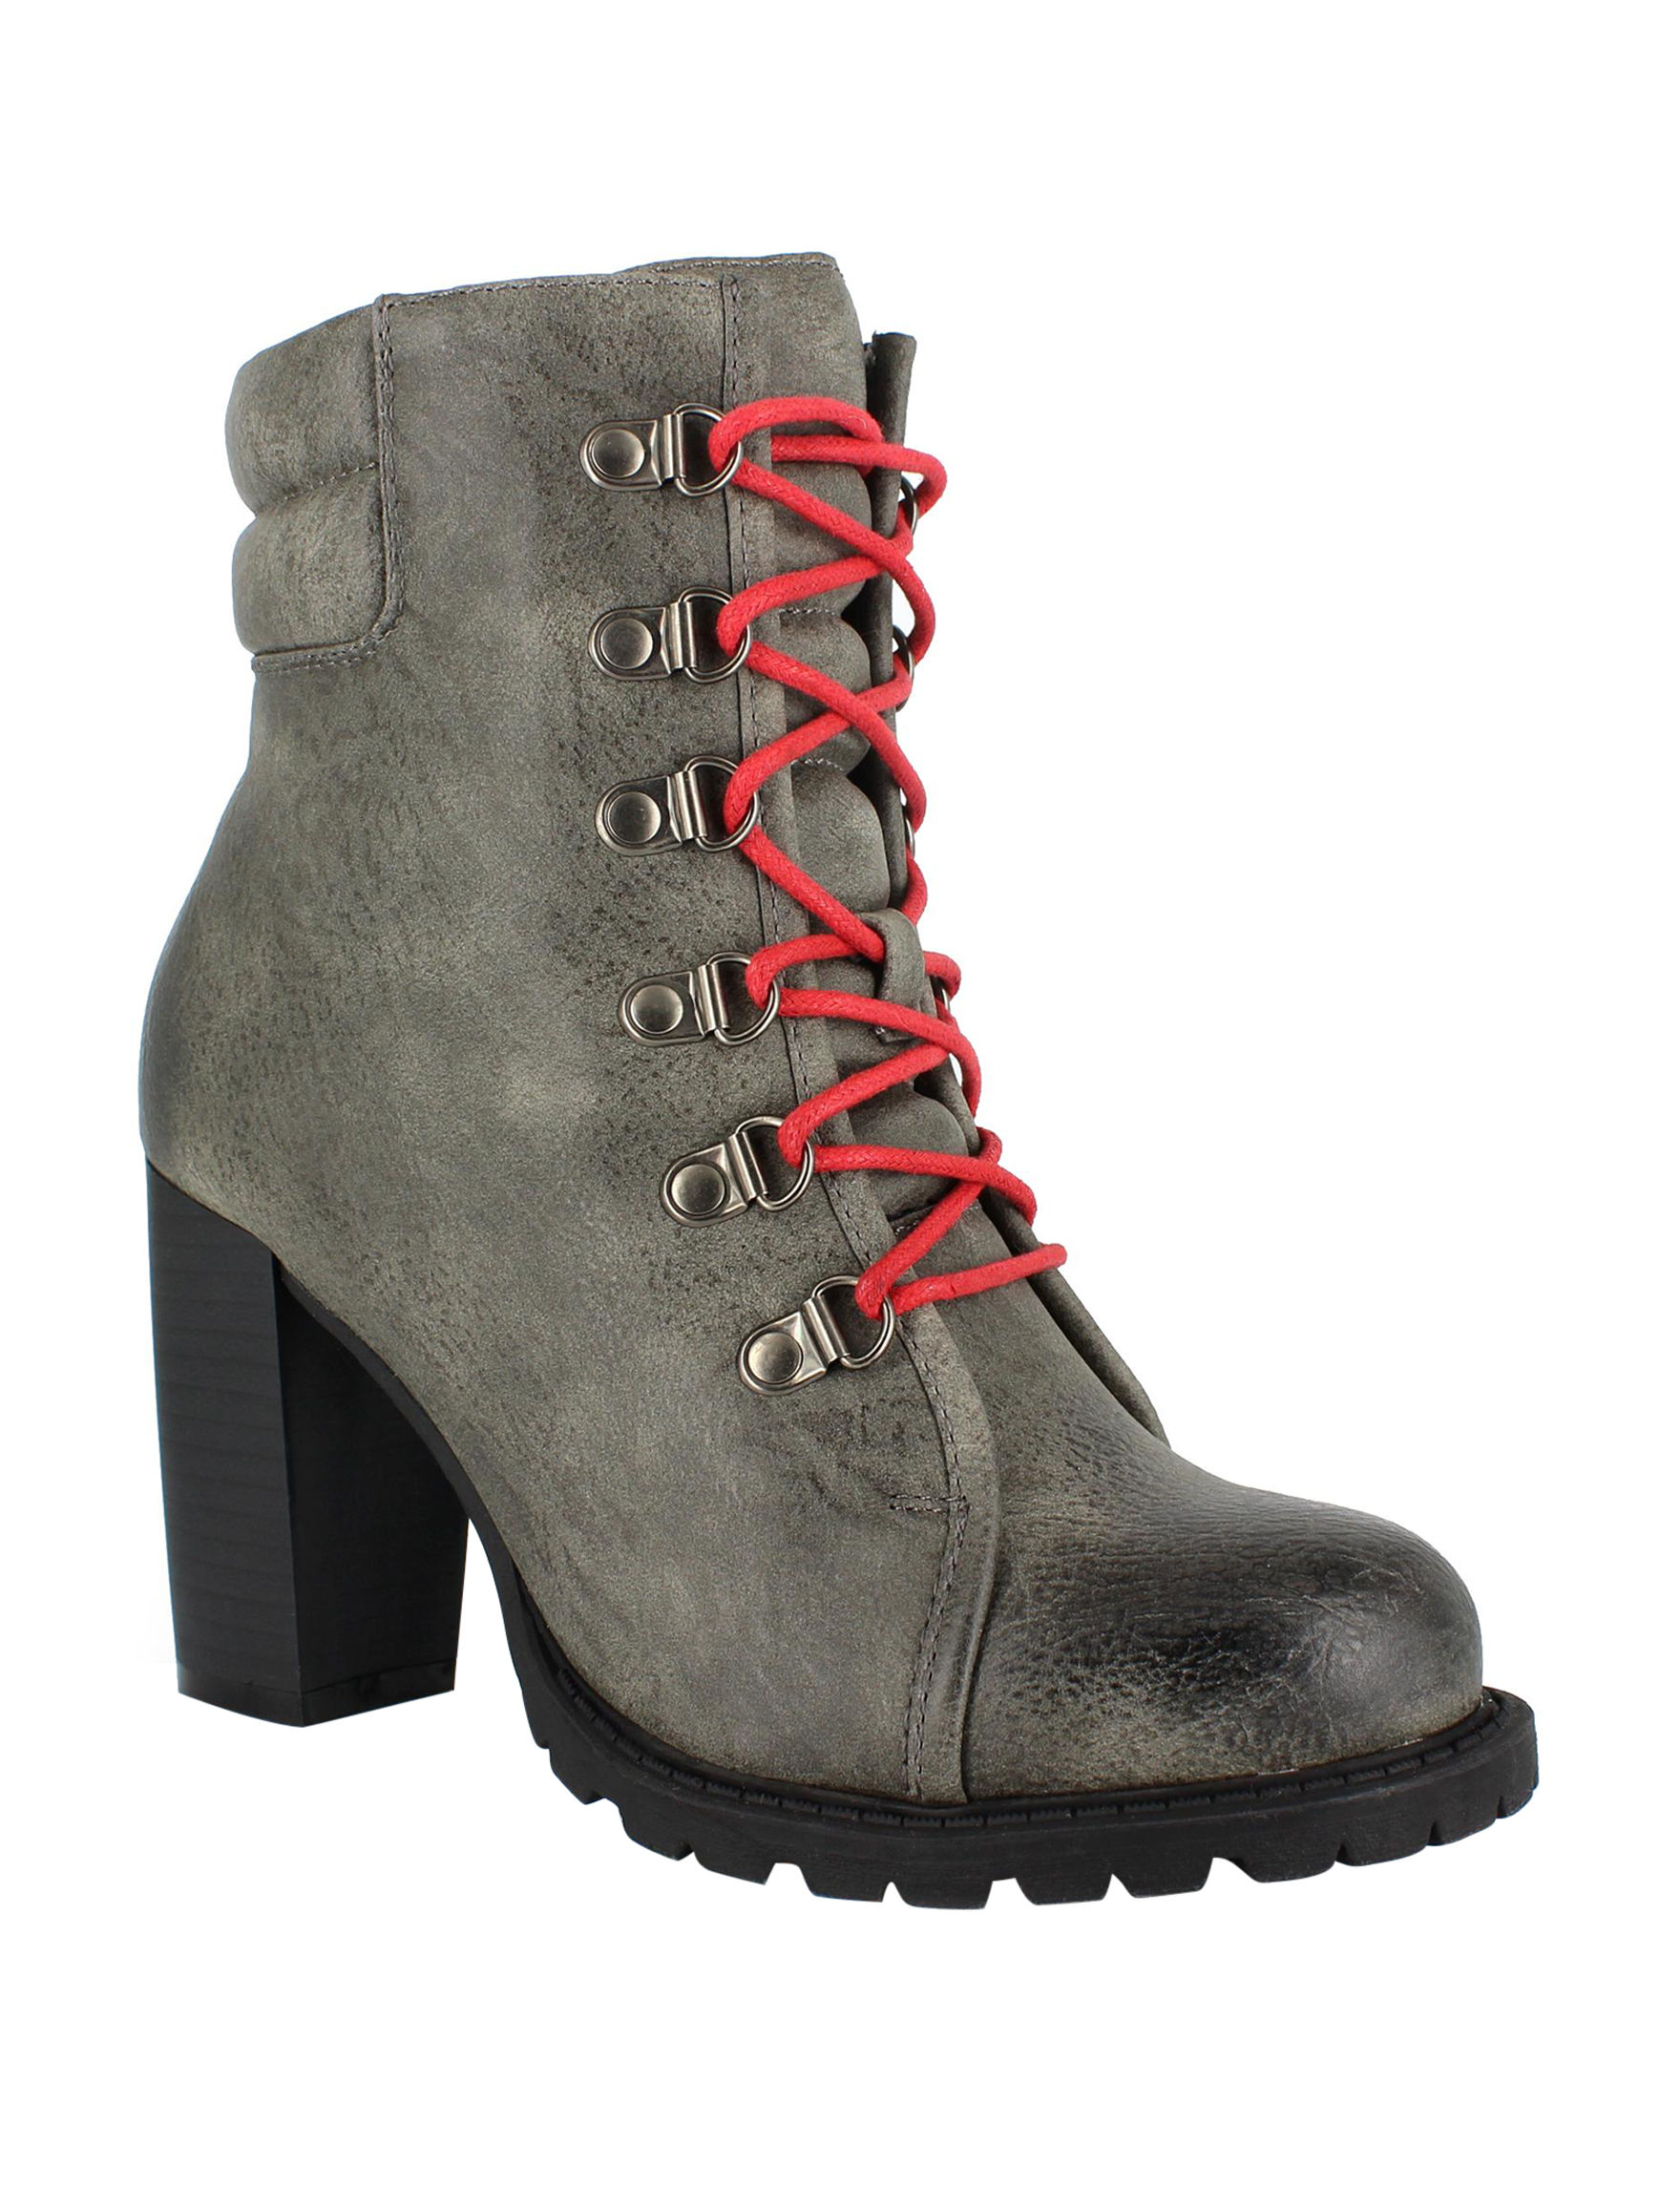 Dolce by Mojo Moxy Charcoal